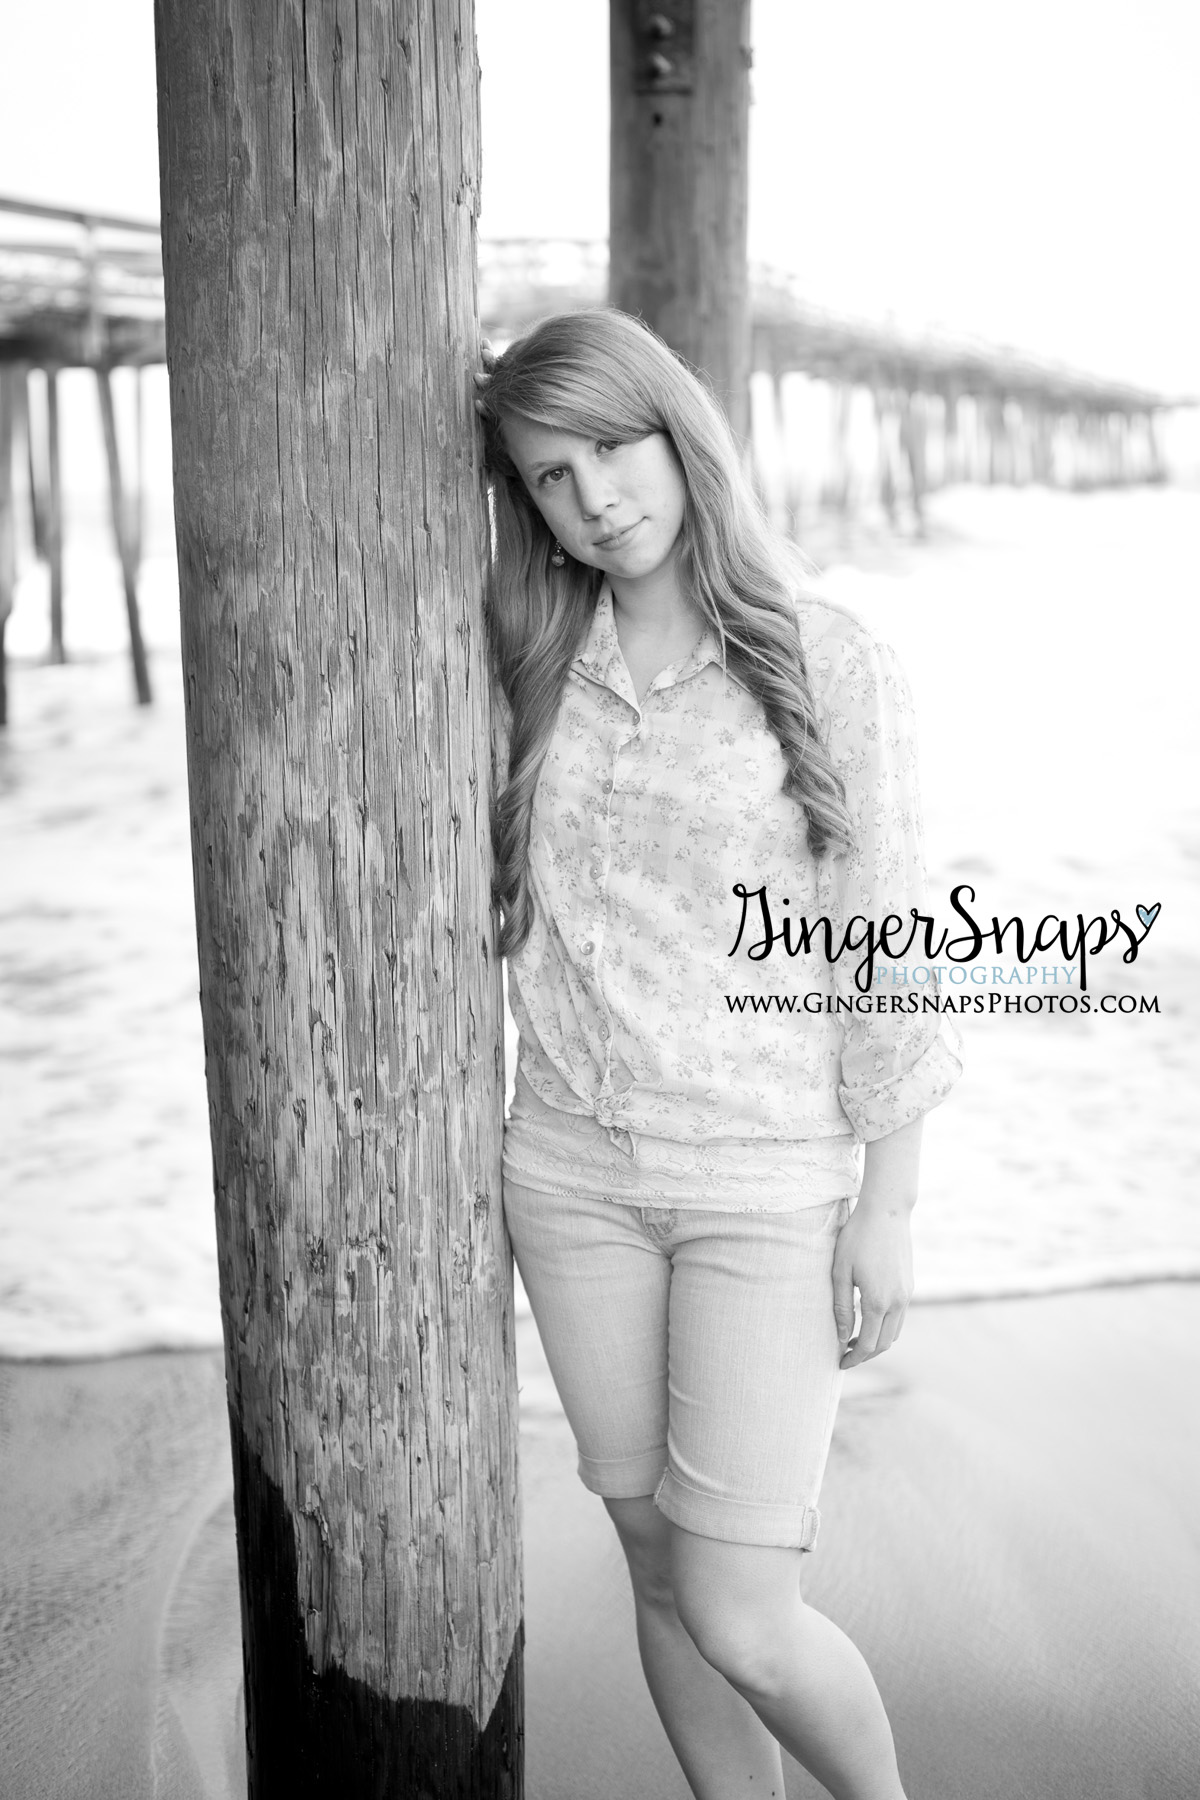 GingerSnaps Photography - 04.jpg